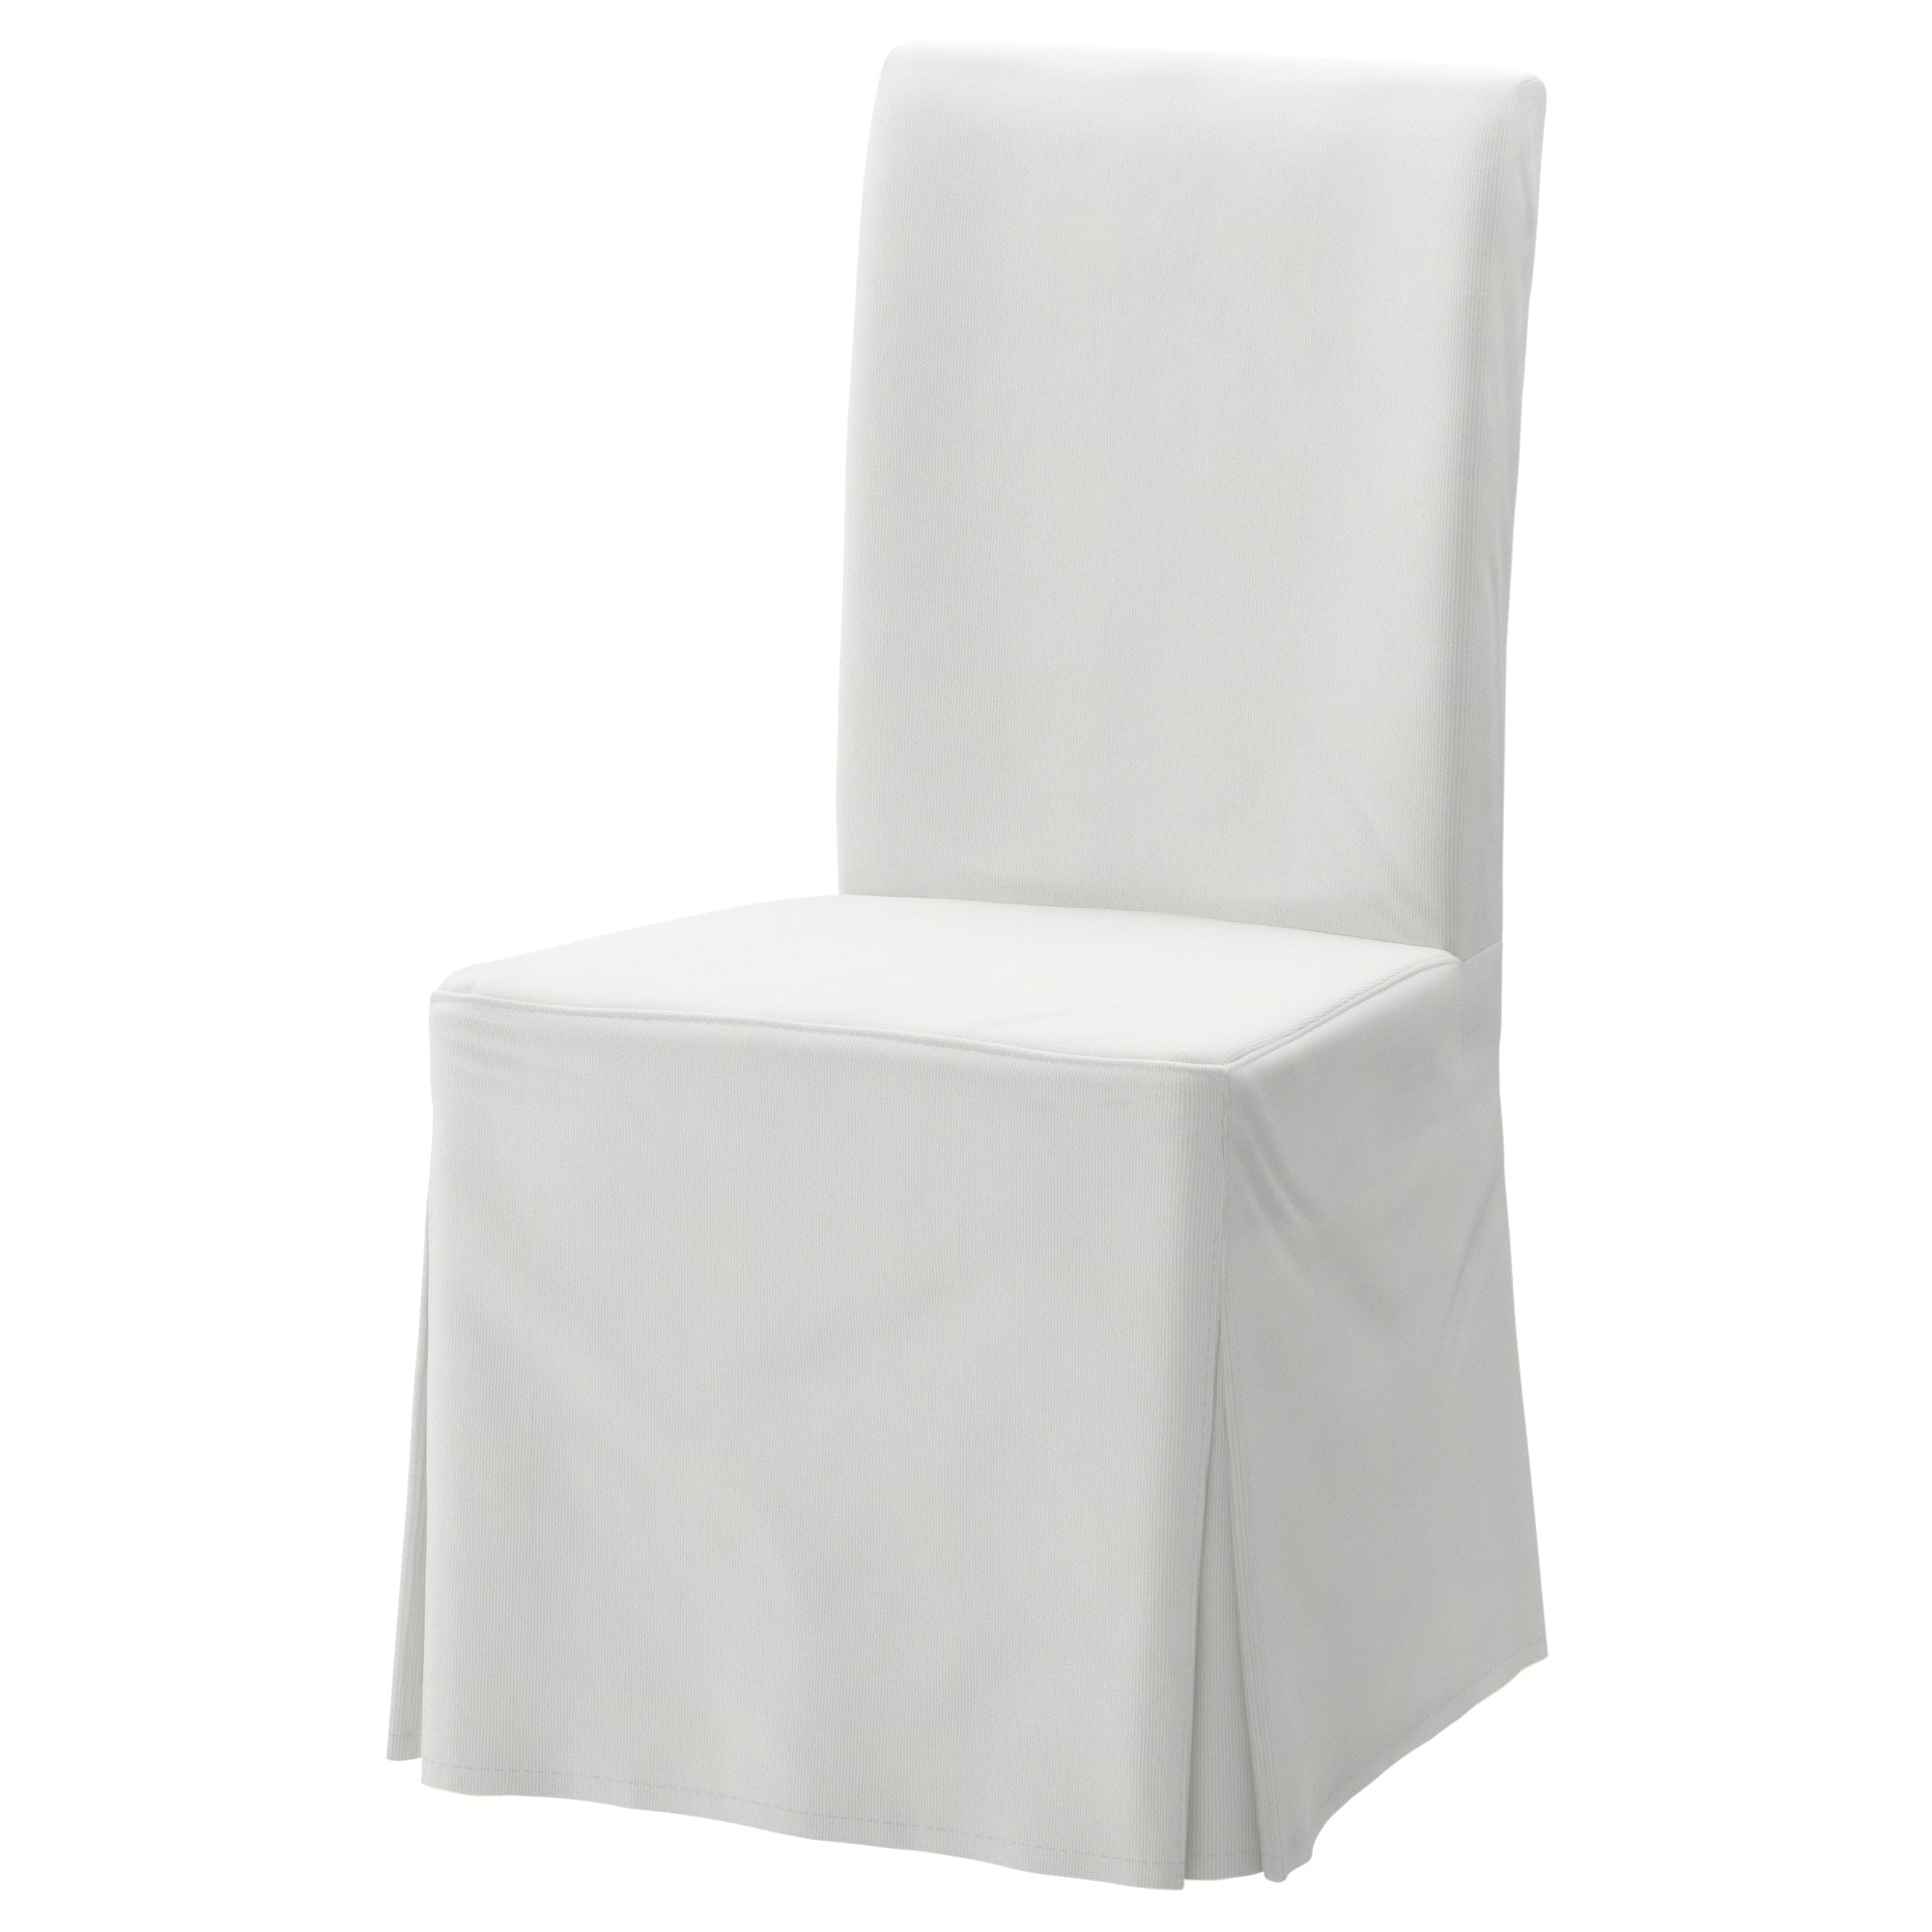 Chair Covers - IKEA